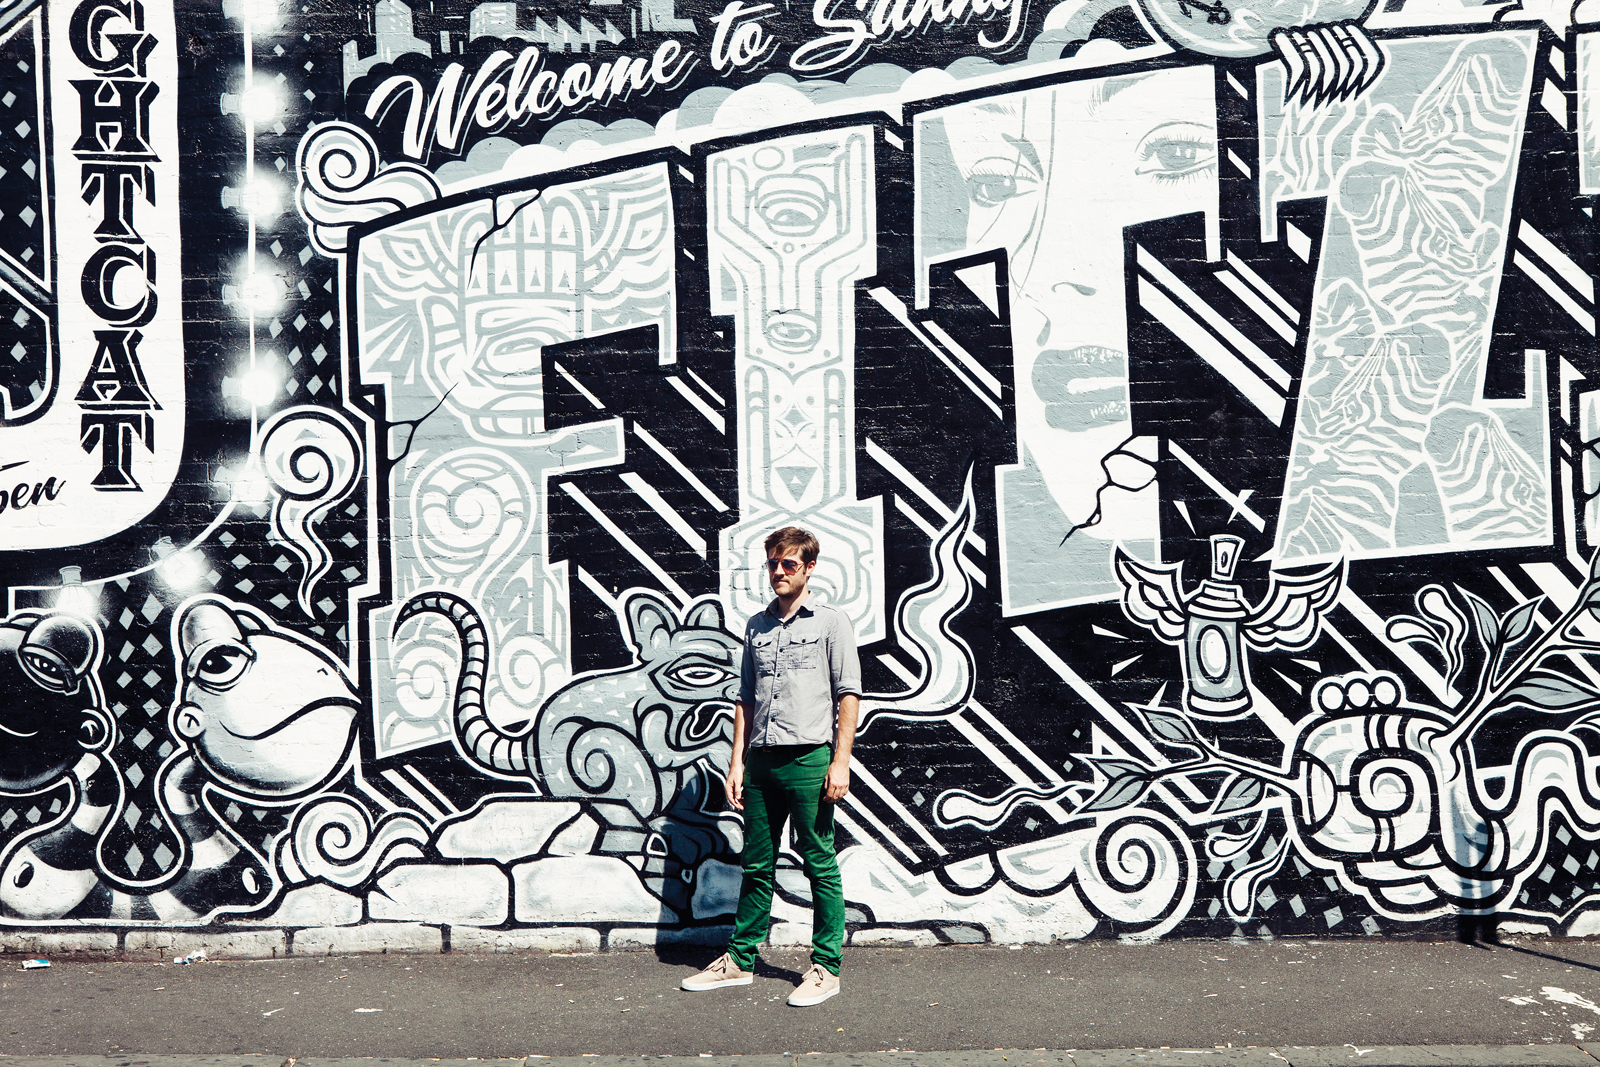 Architect Andrew Maynard gives us a proper tour of Melbourne's design scene, one that never loses sight of the big picture for all the fascinating nooks and crannies.